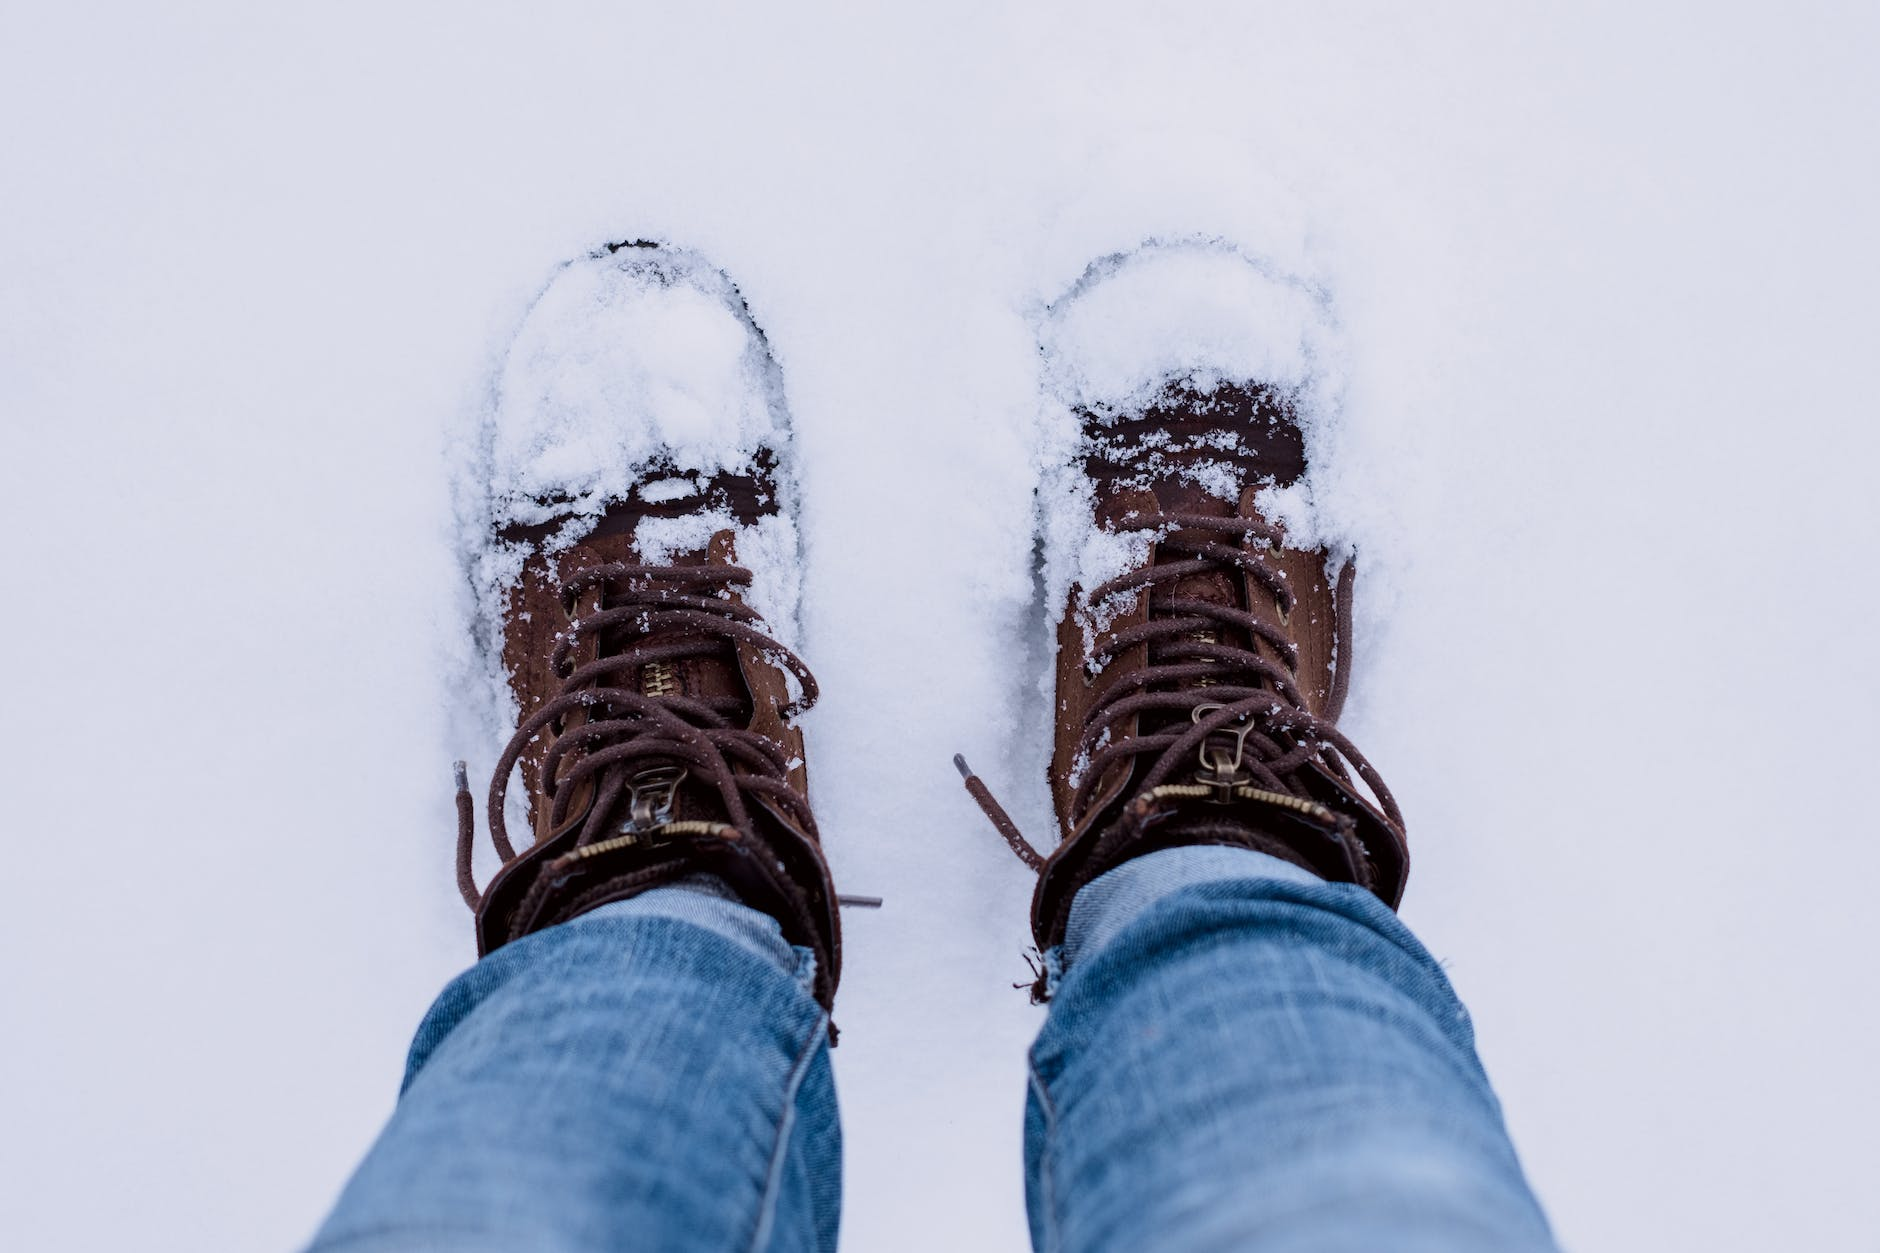 best winter boots for men person-wearing-brown-boots-and-blue-denim-jeans-standing-on-snow